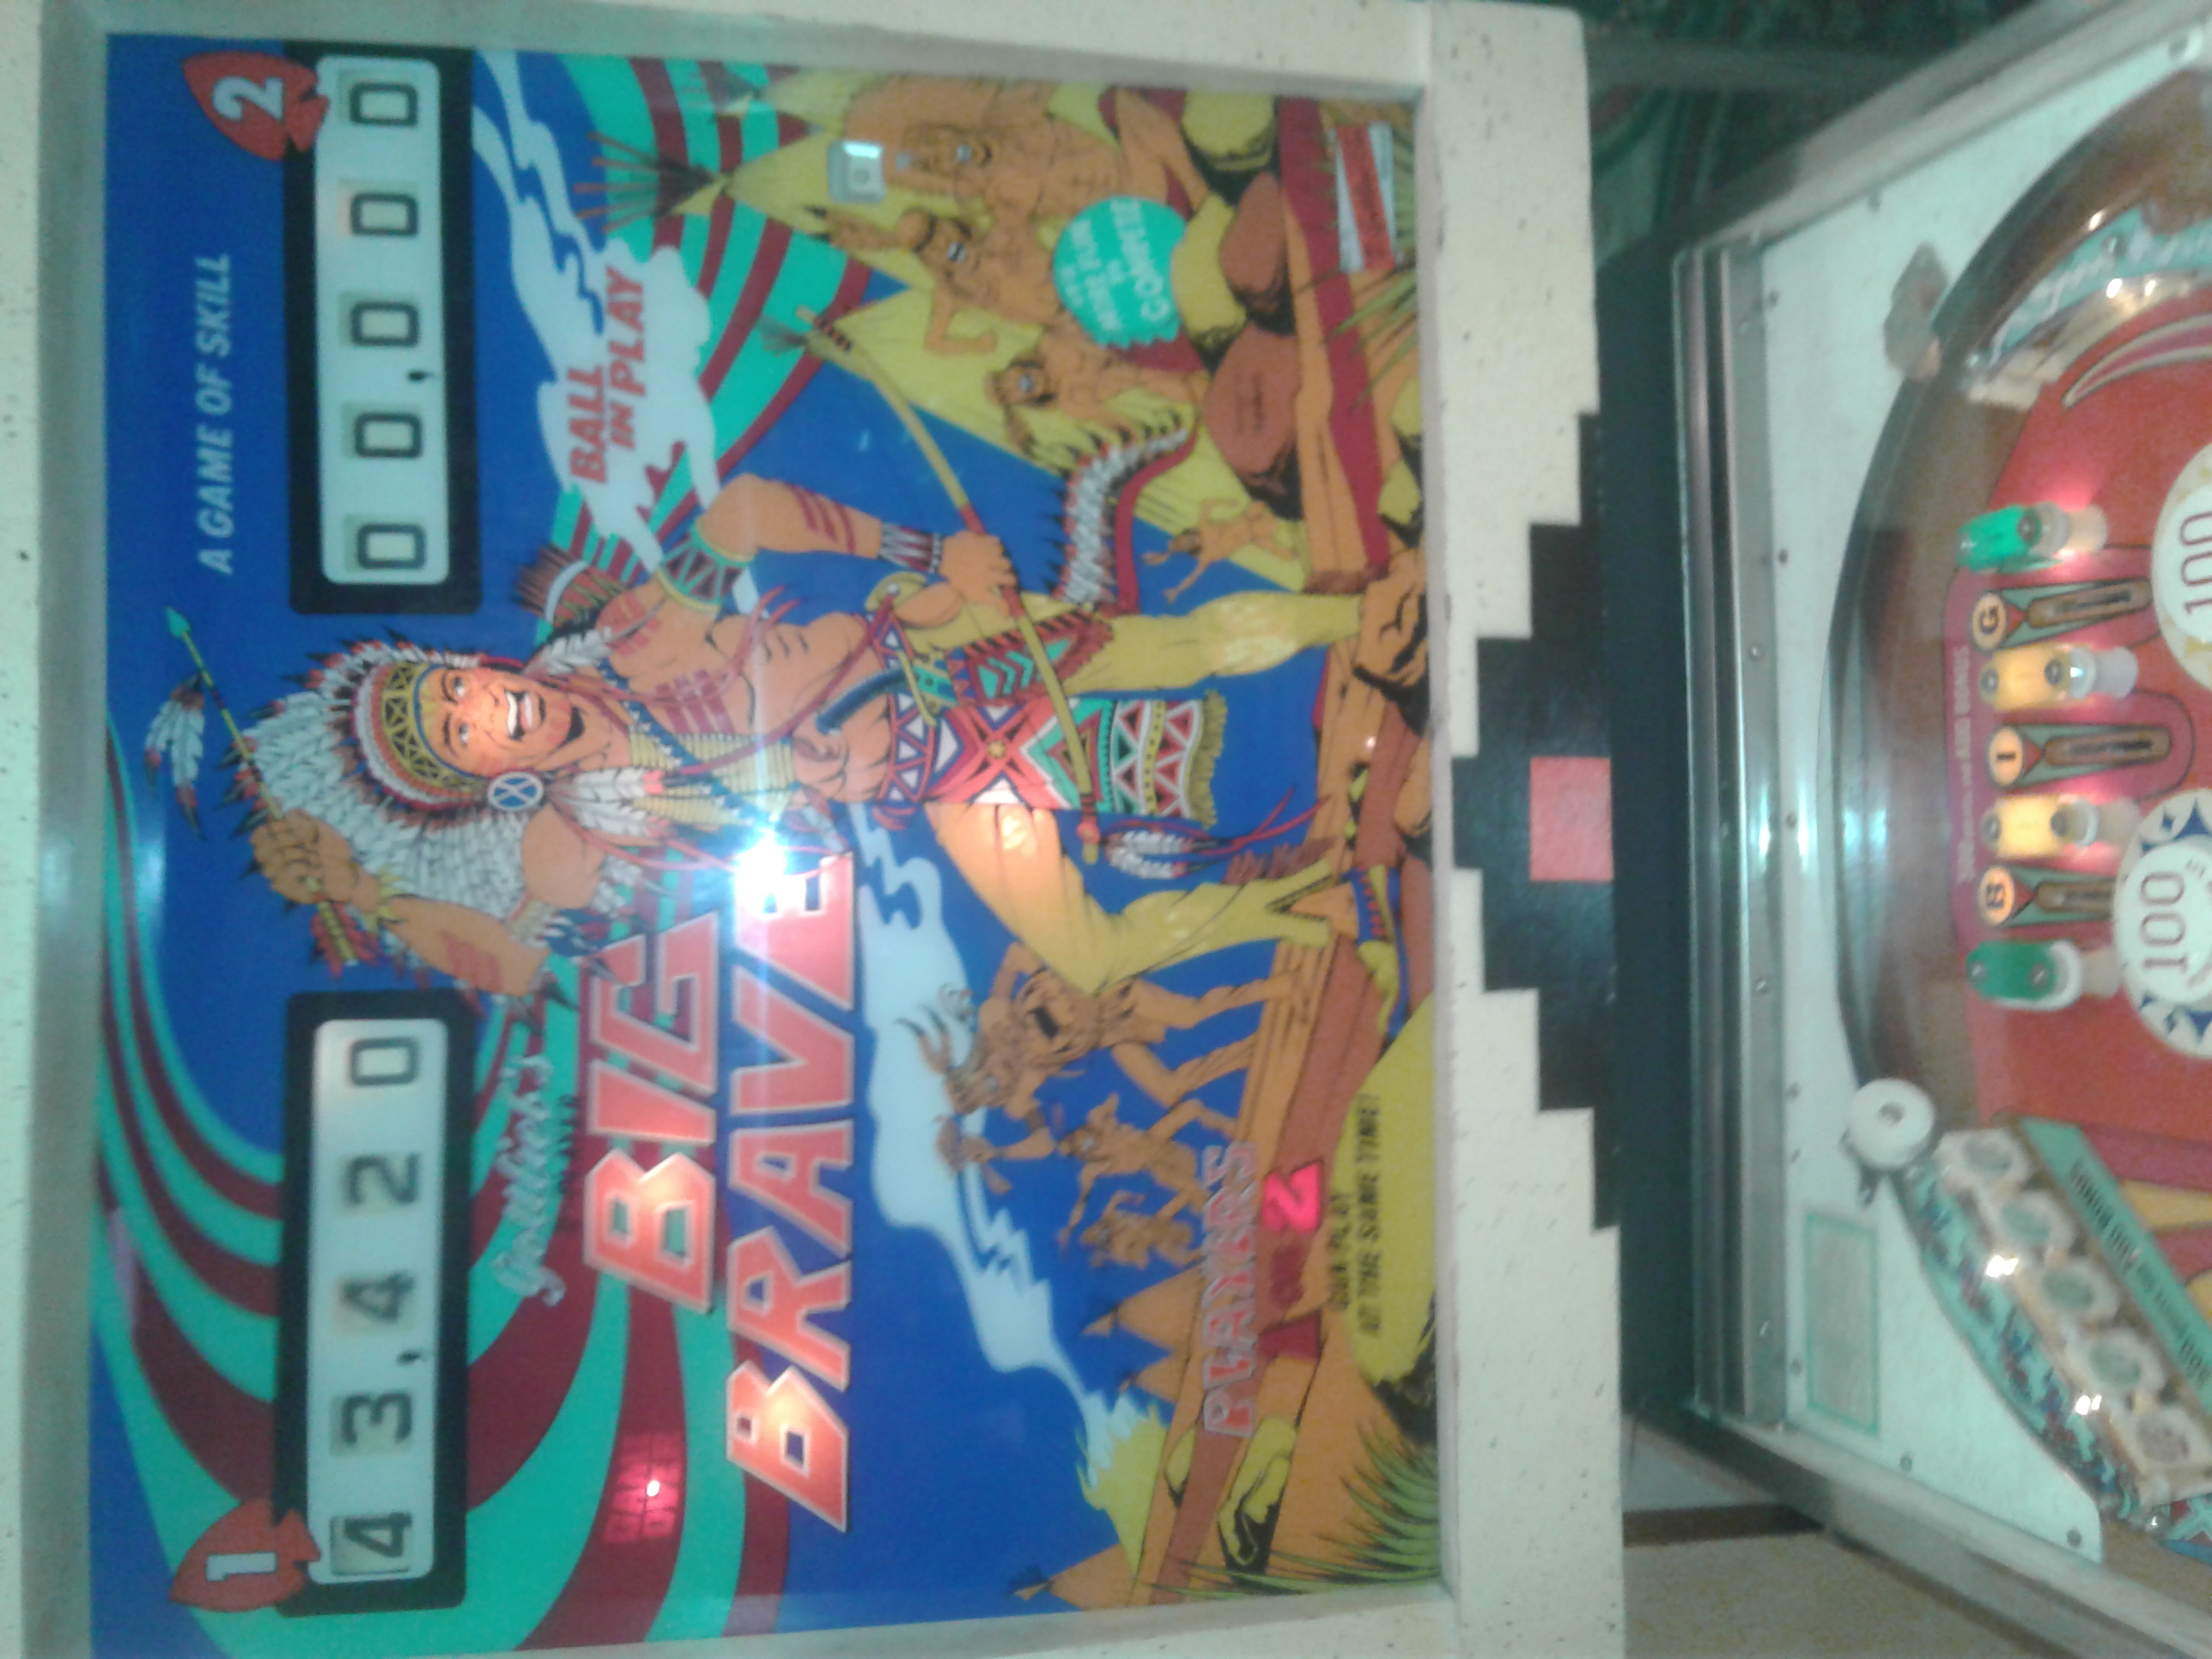 Mark: Big Brave (Gottlieb pinball) (Pinball: 5 Balls) 43,420 points on 2019-01-01 22:00:45